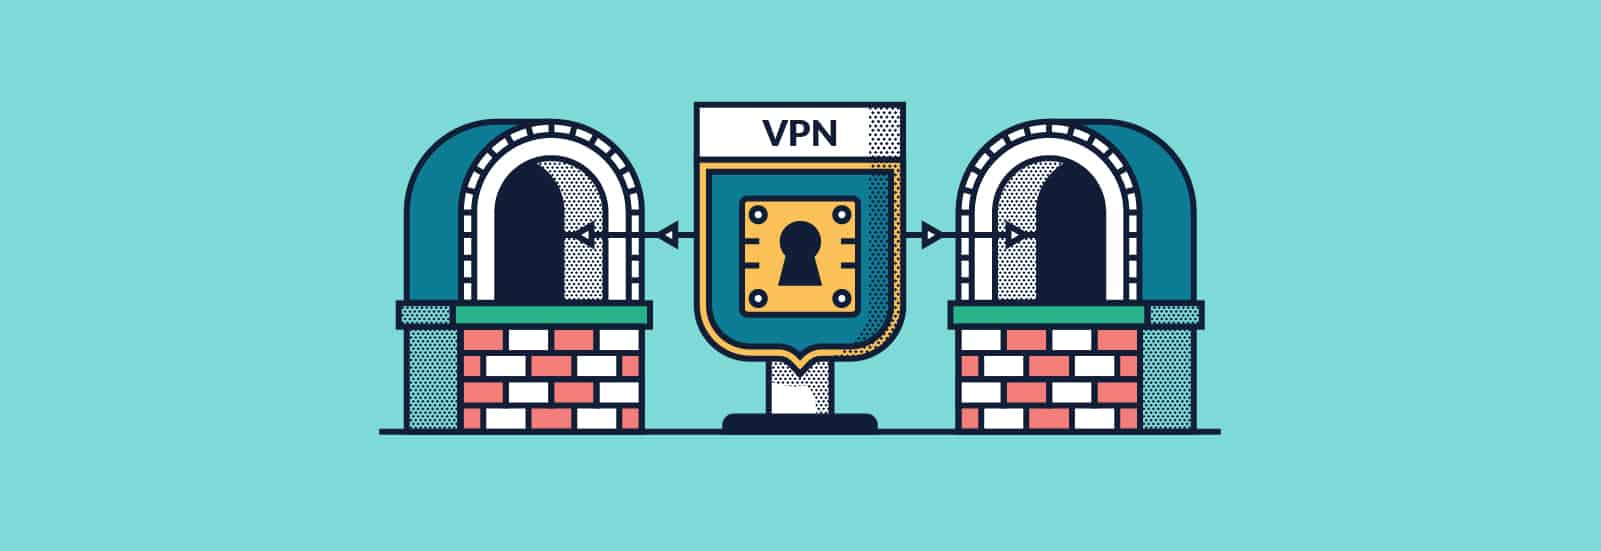 tor vs vpn which should you use thebestvpn com